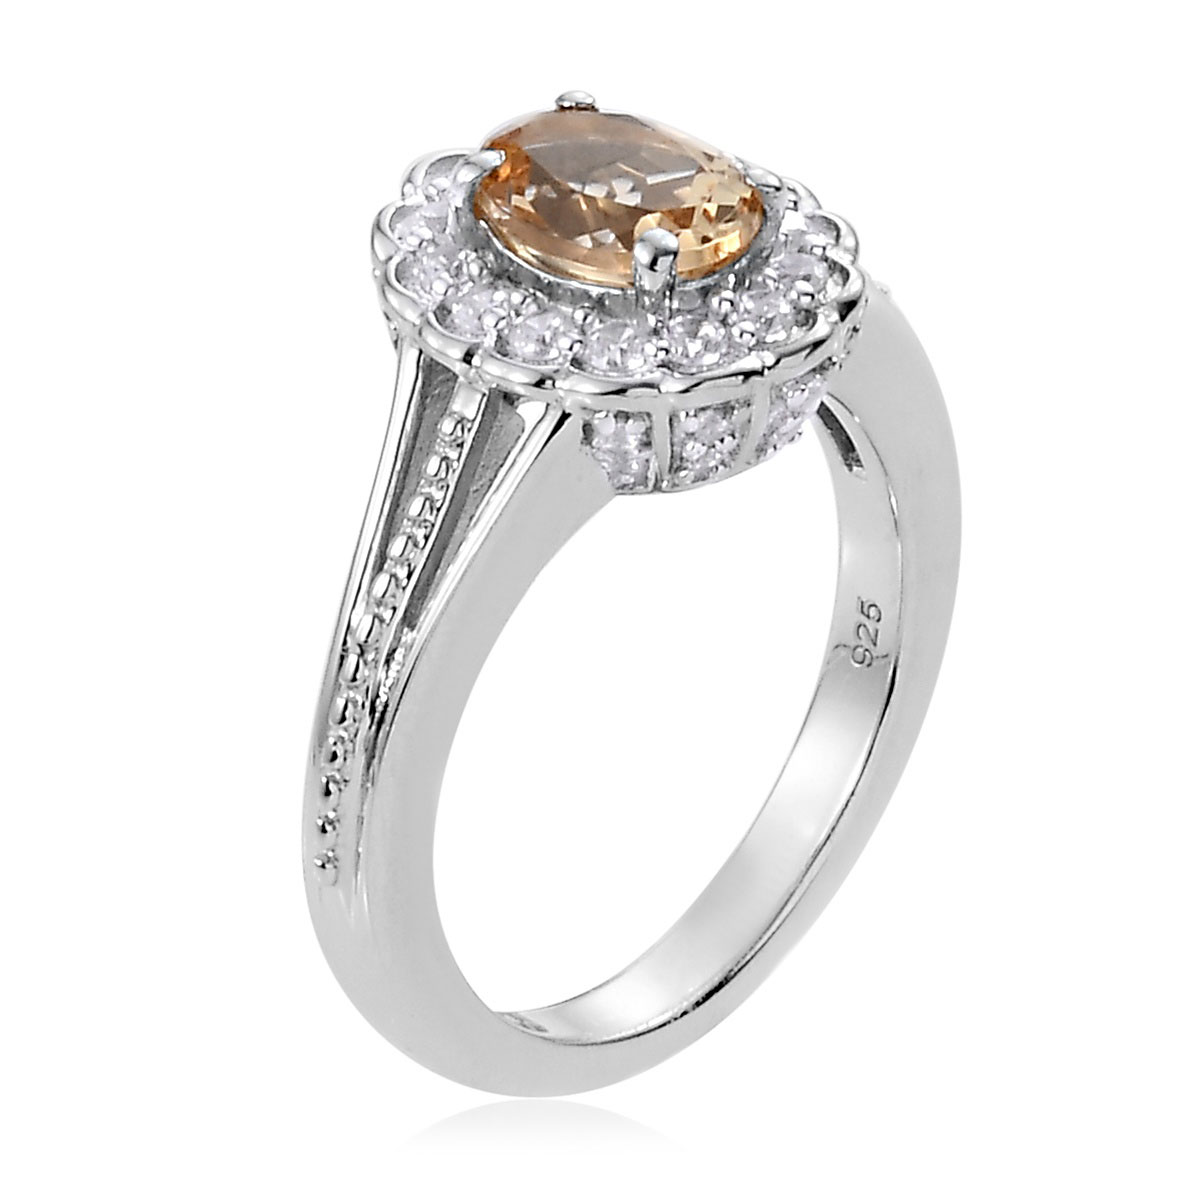 Golden Imperial Topaz, Zircon Ring in Platinum Over Sterling Silver (Size 9.0) 1.46 ctw